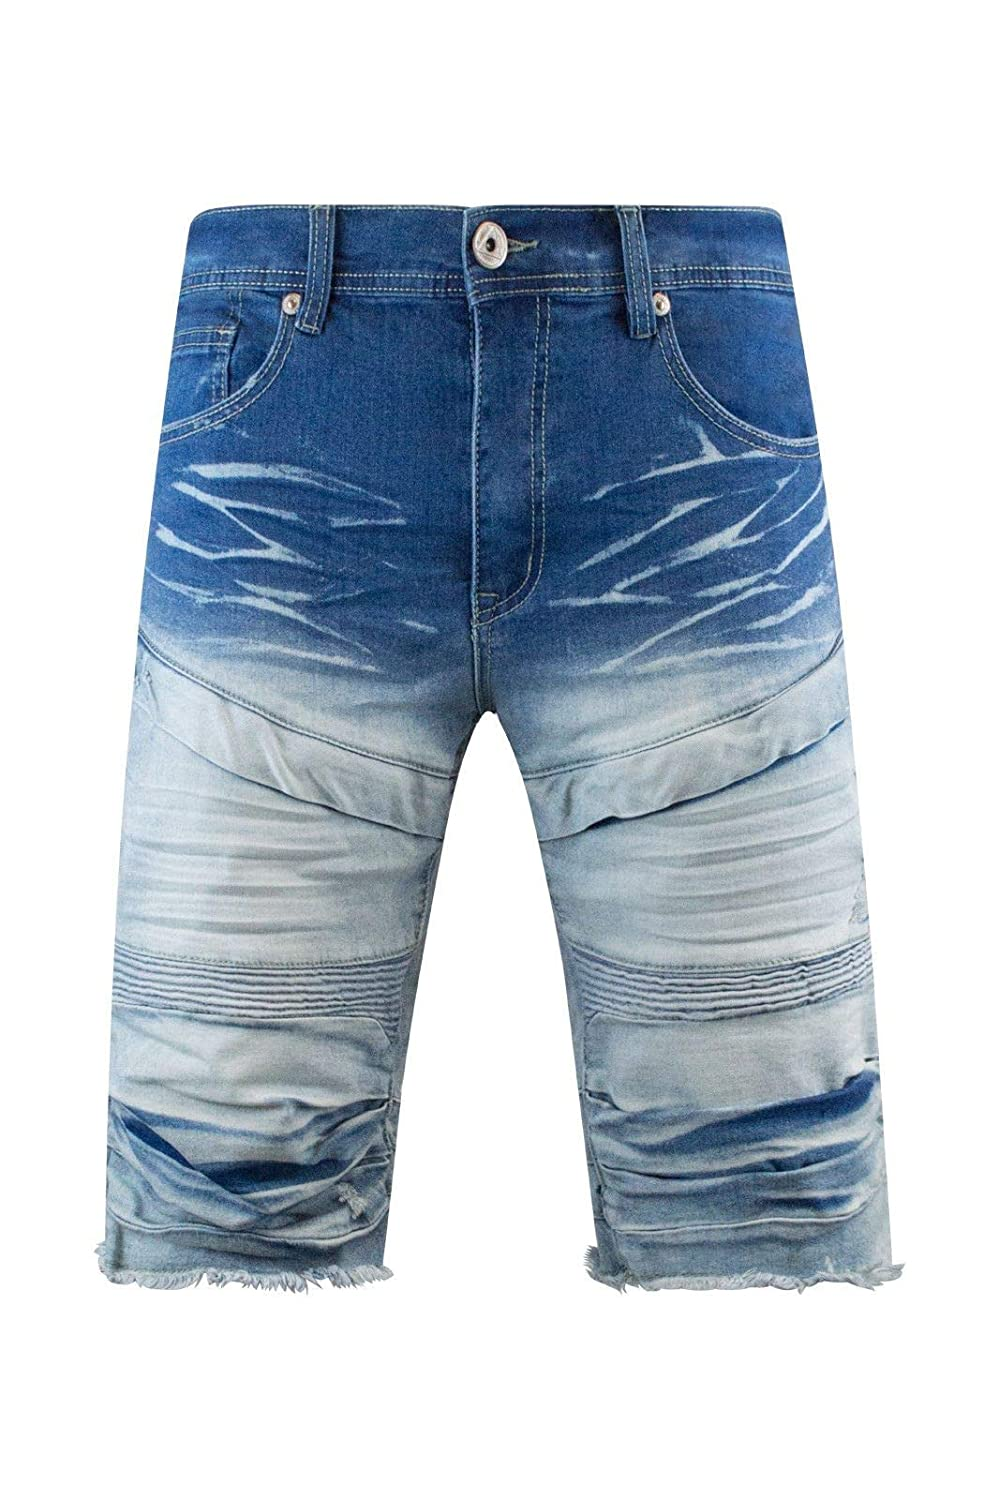 Trending Apparel Men Denim Biker Stripped Shorts